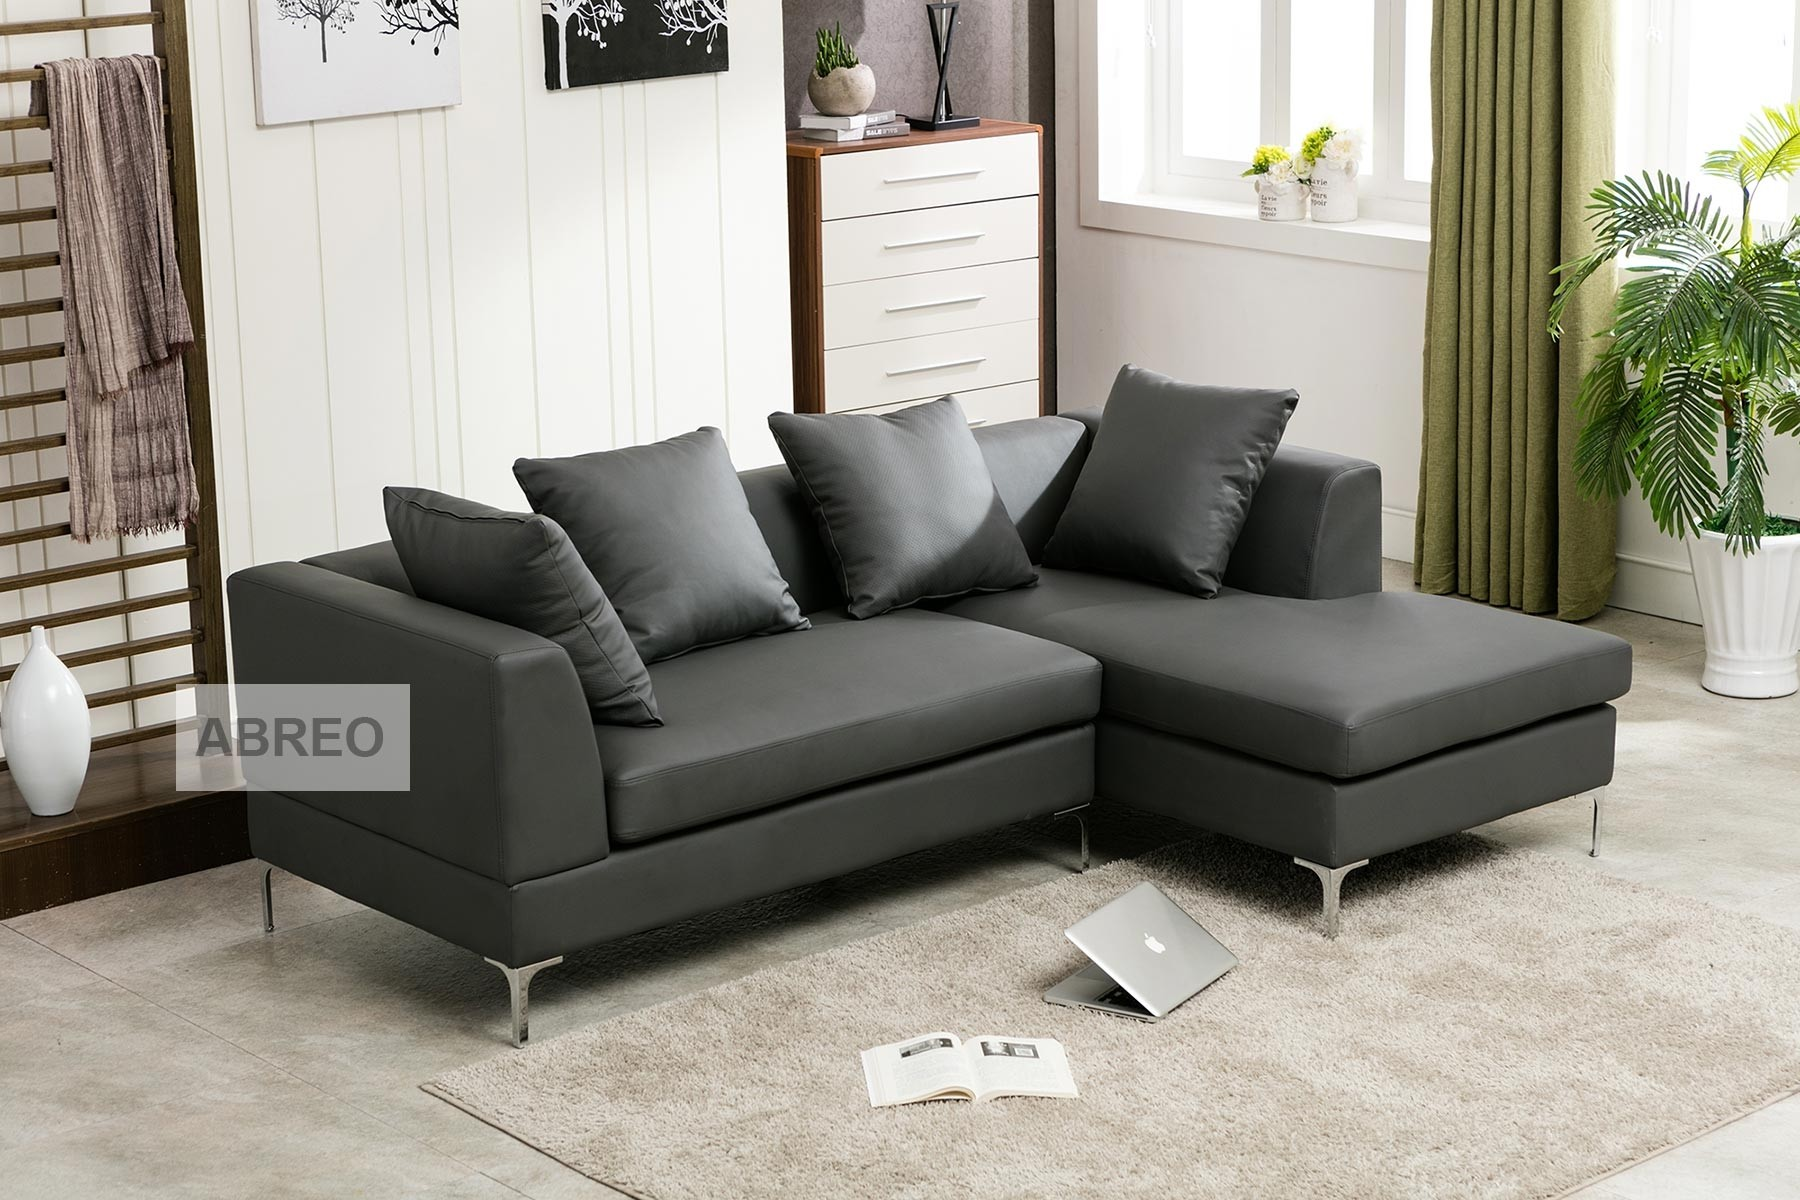 Manhattan Corner Grey Sofa Leather Sofas Sofas Abreo Home Furniture